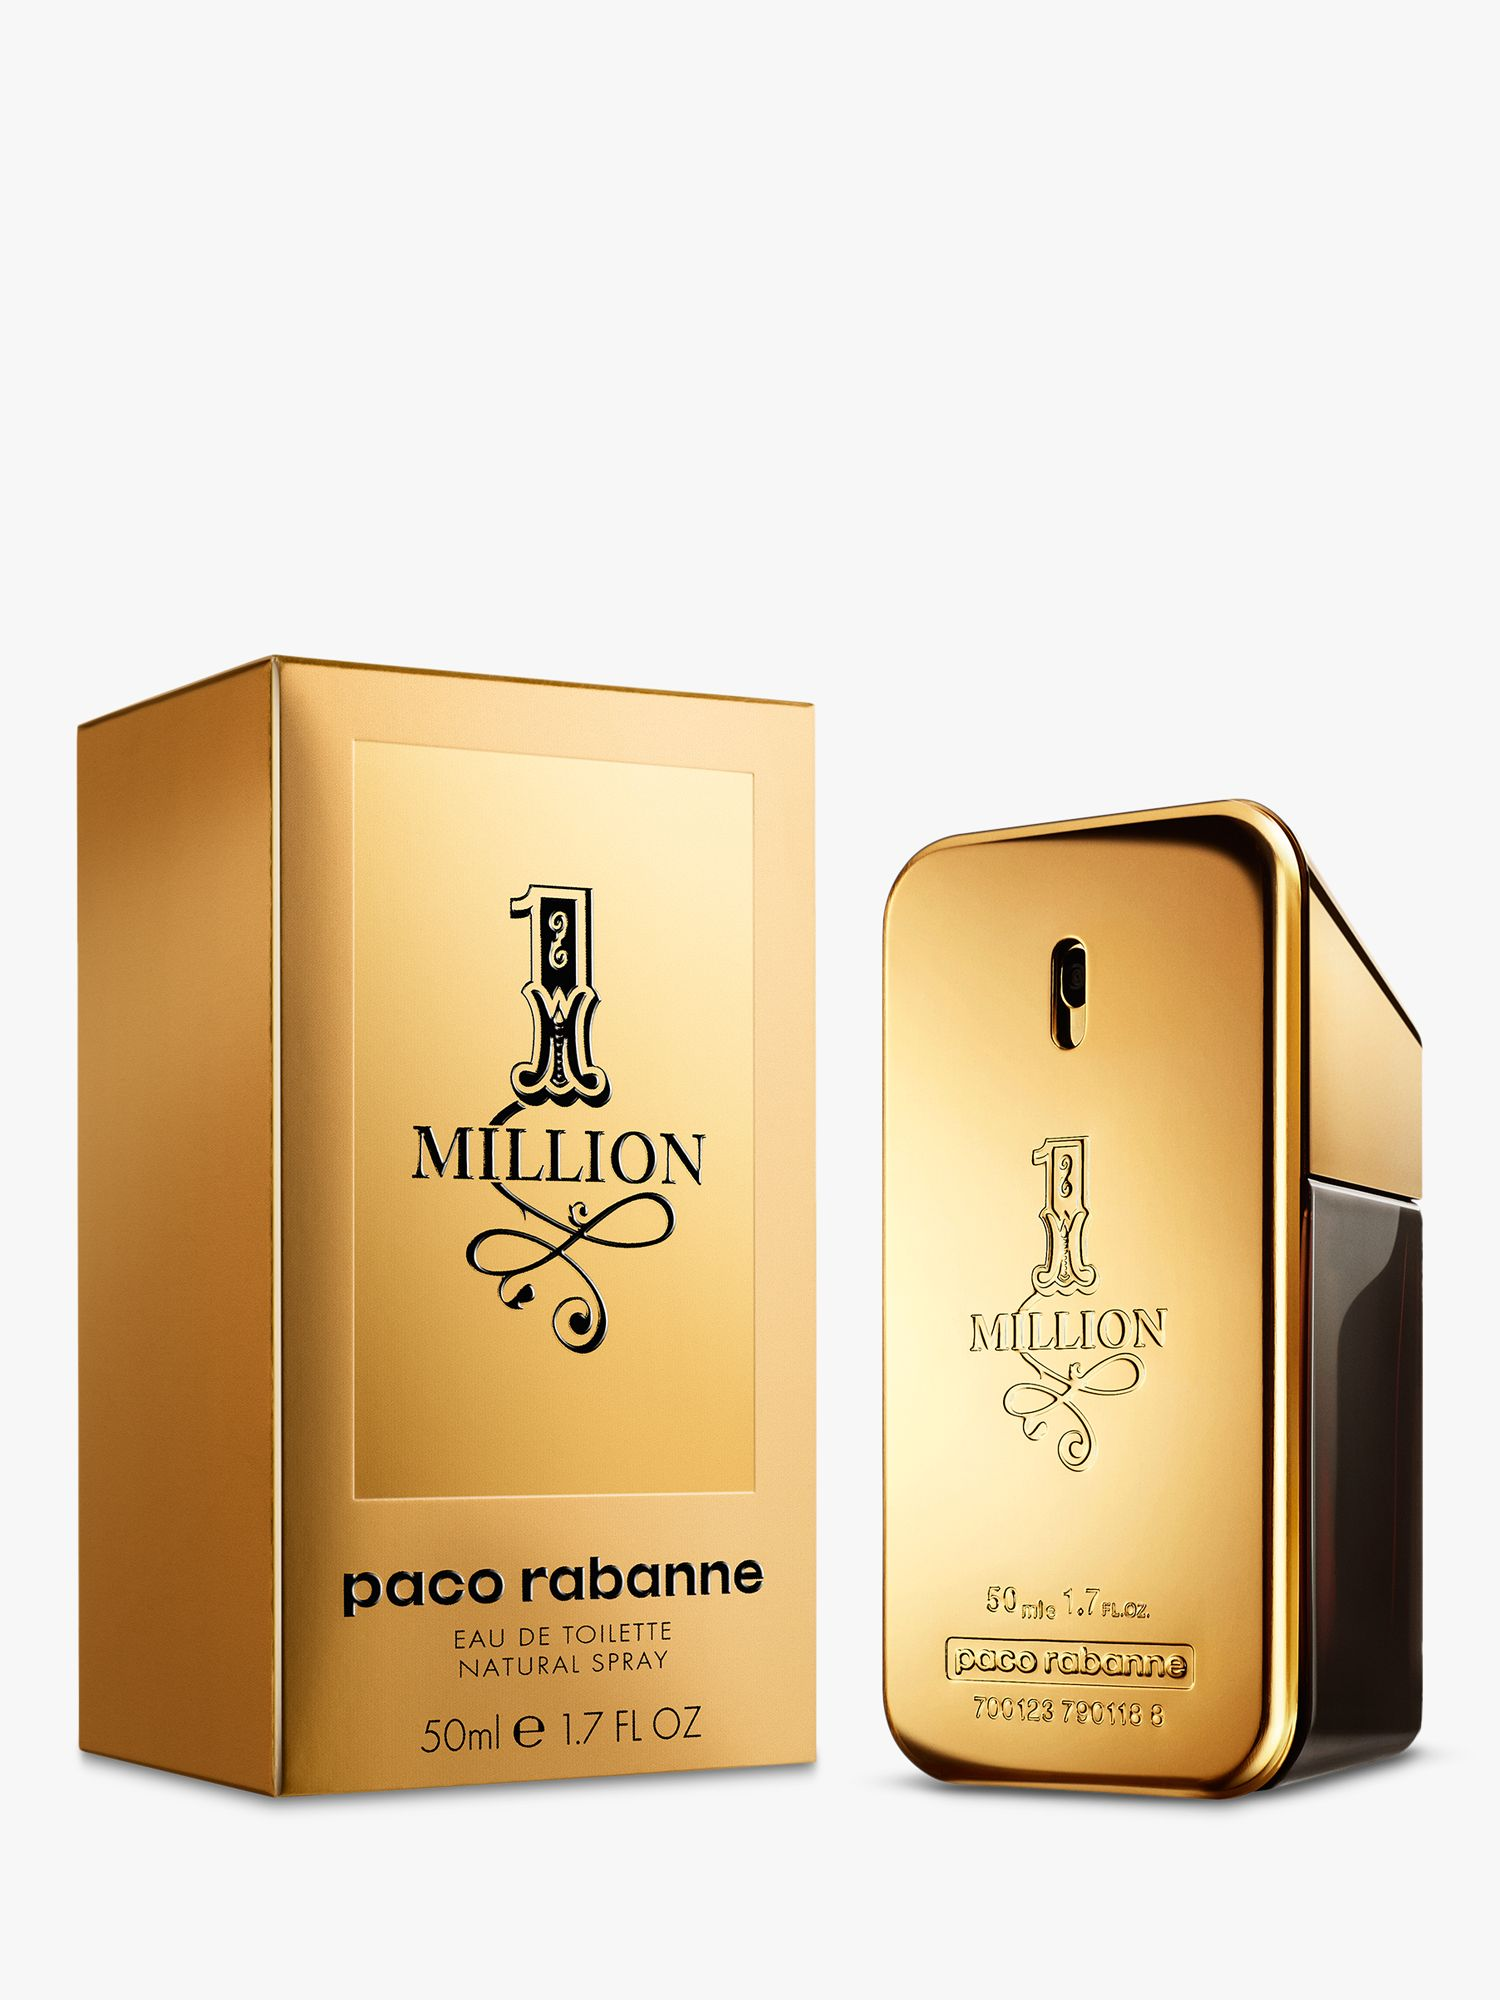 Paco rabanne | Aftershave | Beauty